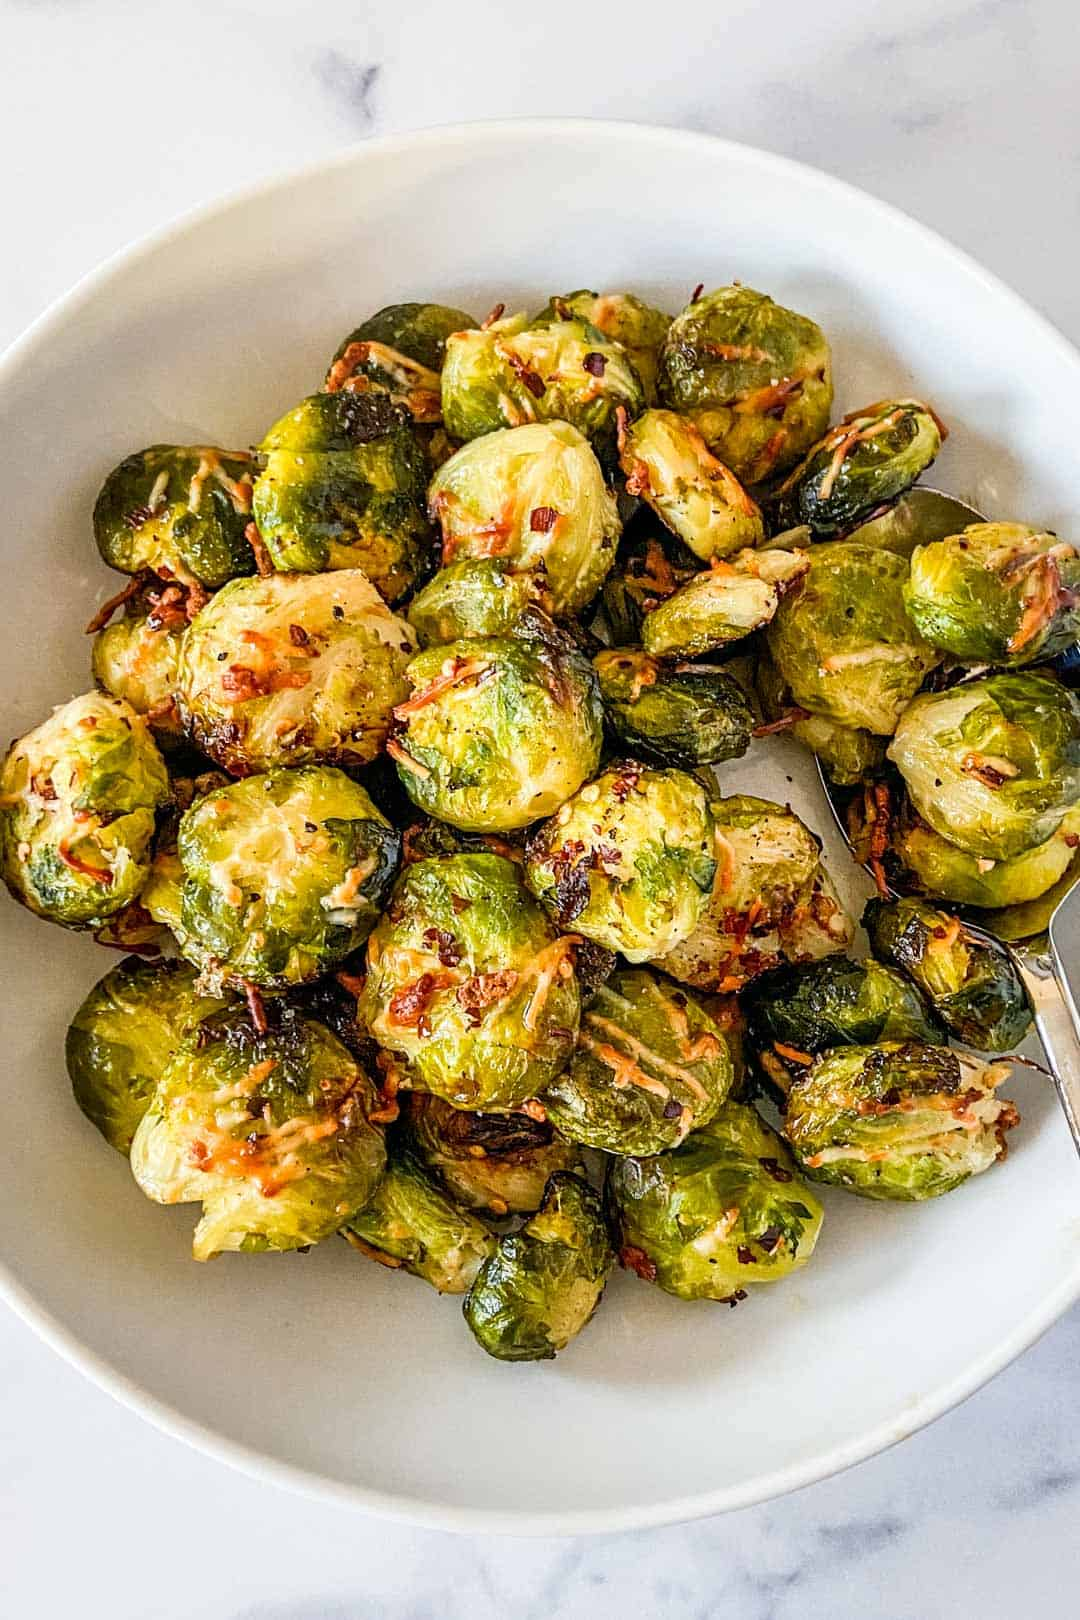 Crispy smashed Brussels sprouts in a serving bowl.